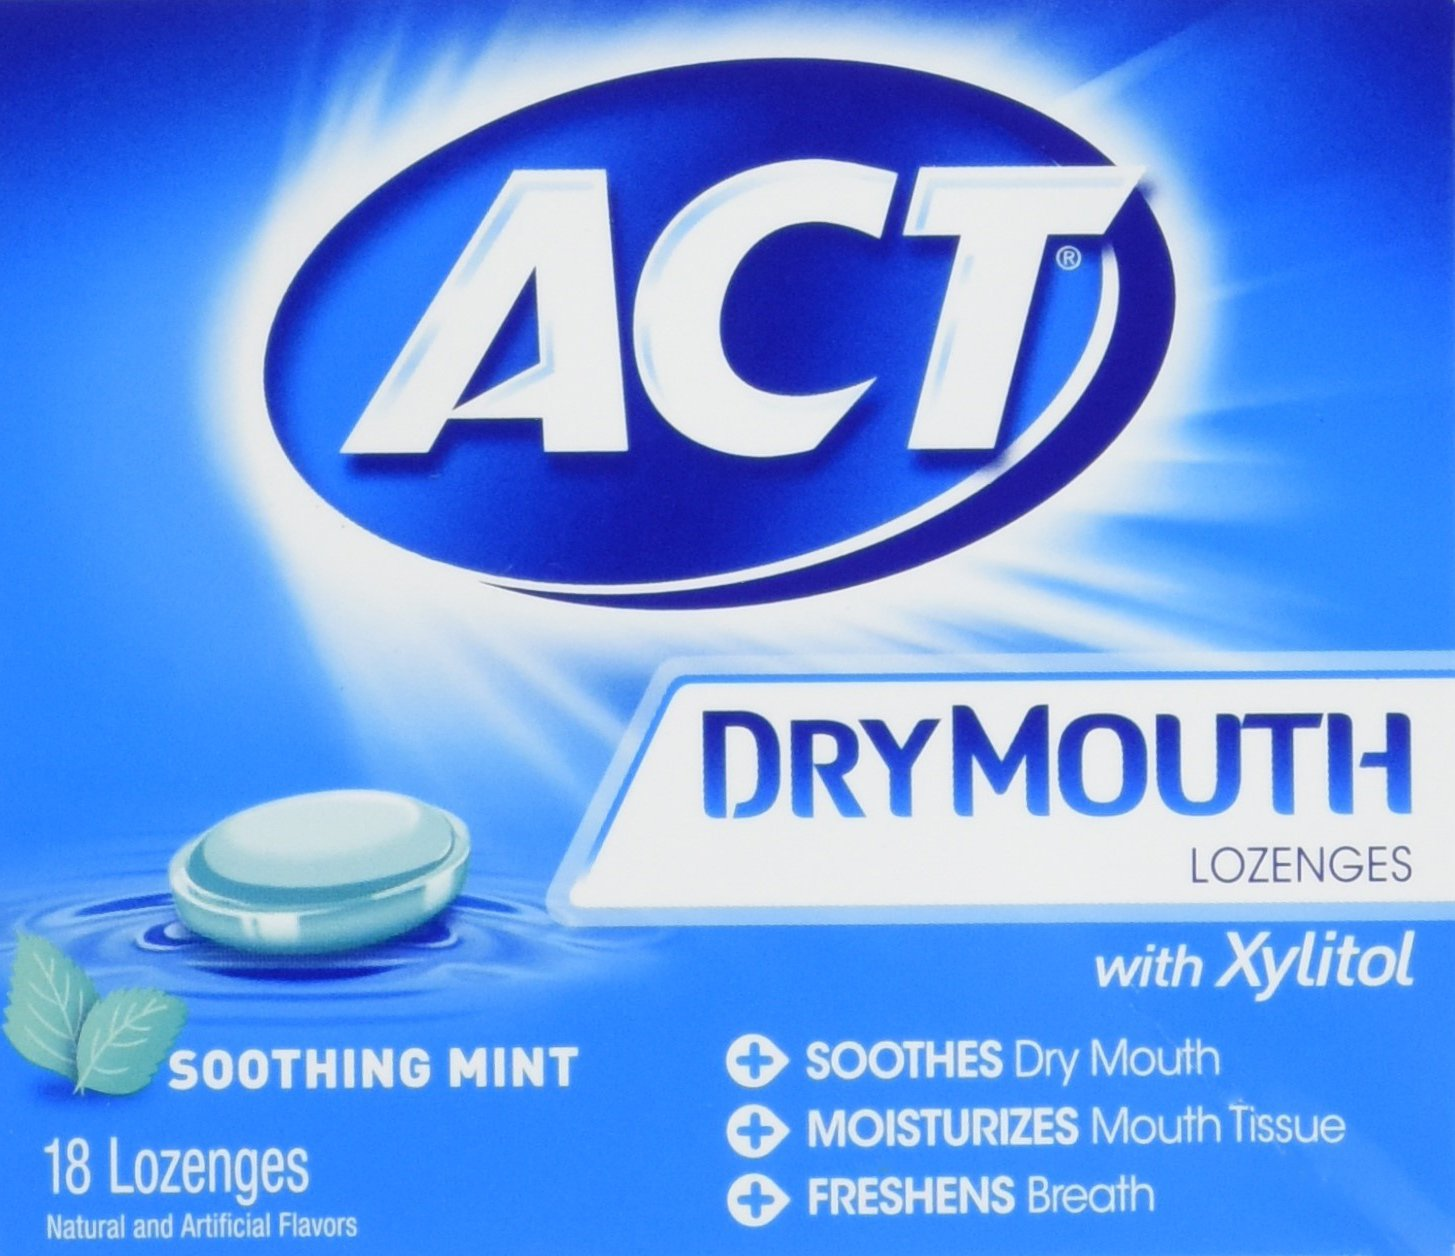 ACT Total Care, Dry Mouth Lozenges, 18 Count (Pack of 6), Soothing Mint Flavored Lozenges with Xylitol Help Moisturize Mouth Tissue to Sooth and Relieve Discomfort from Dry Mouth, Freshens Breath by ACT (Image #5)